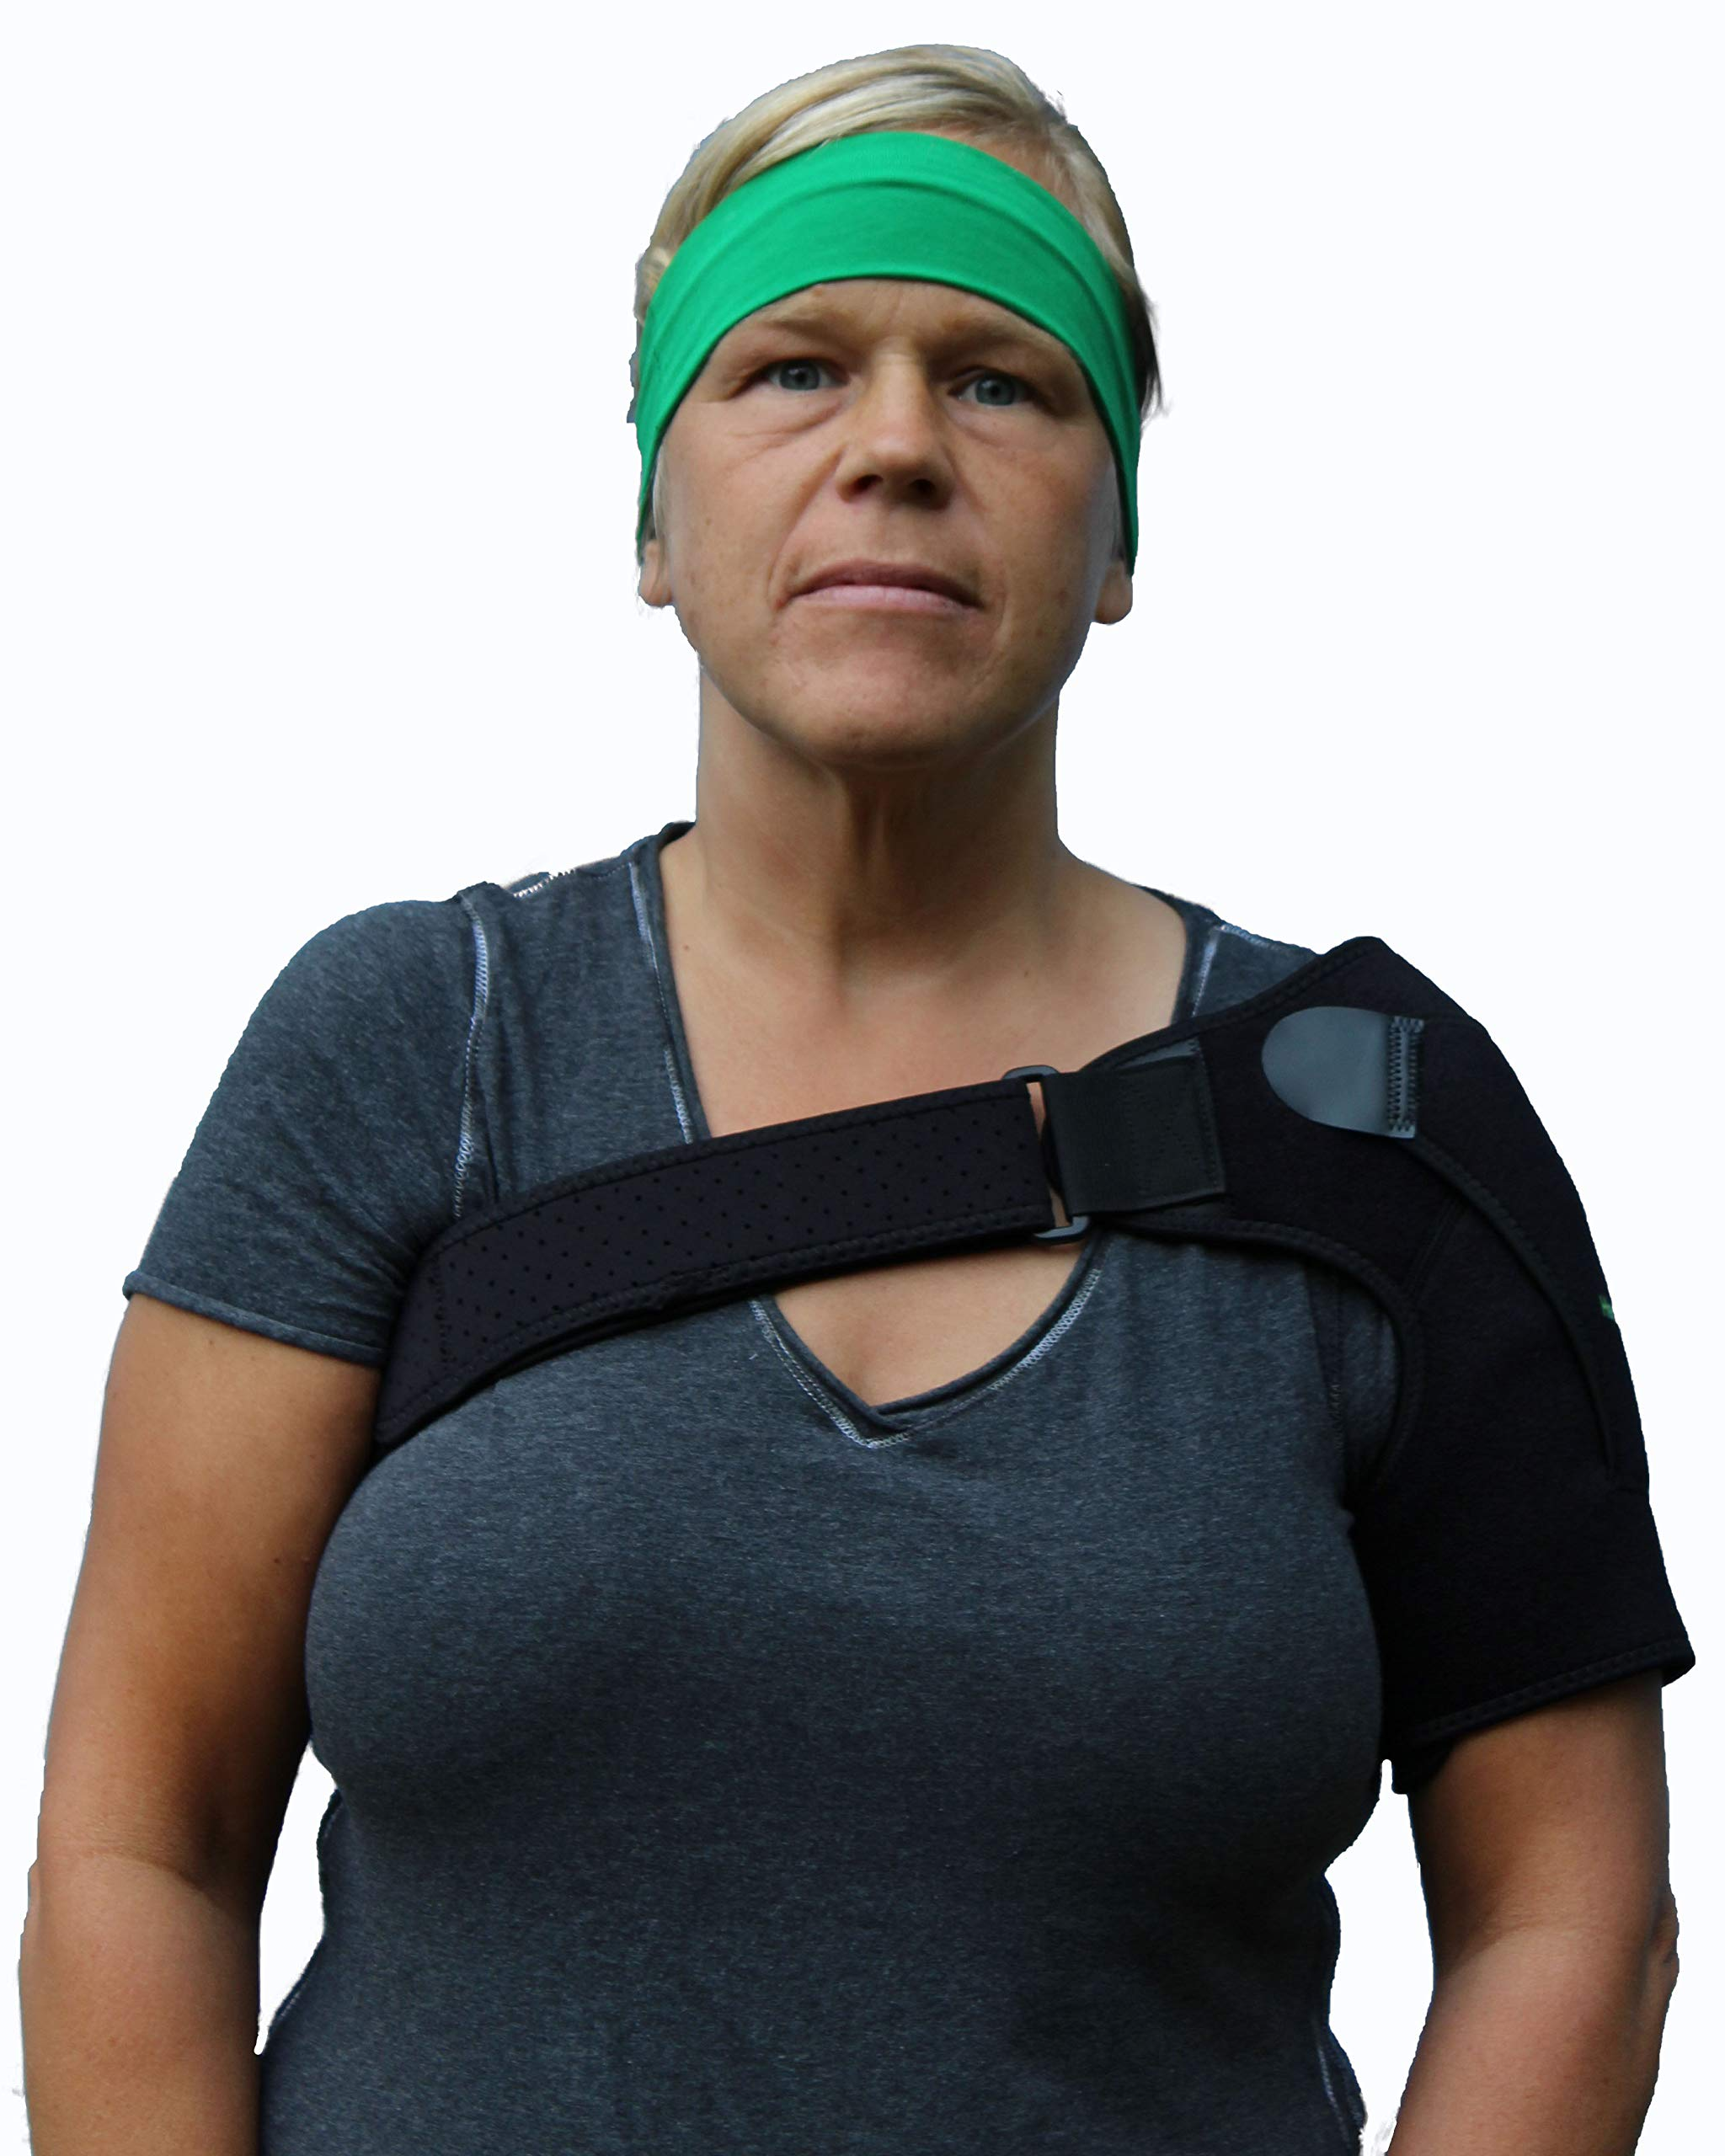 Shoulder Stability Brace By Healthy Kar - Lightweight Universal Support For Men and Women - Stabilizer for Rotator Cuff, AC Joint Dislocation, Bursitis, Labrum Tear - Sports Injury Postural Correction